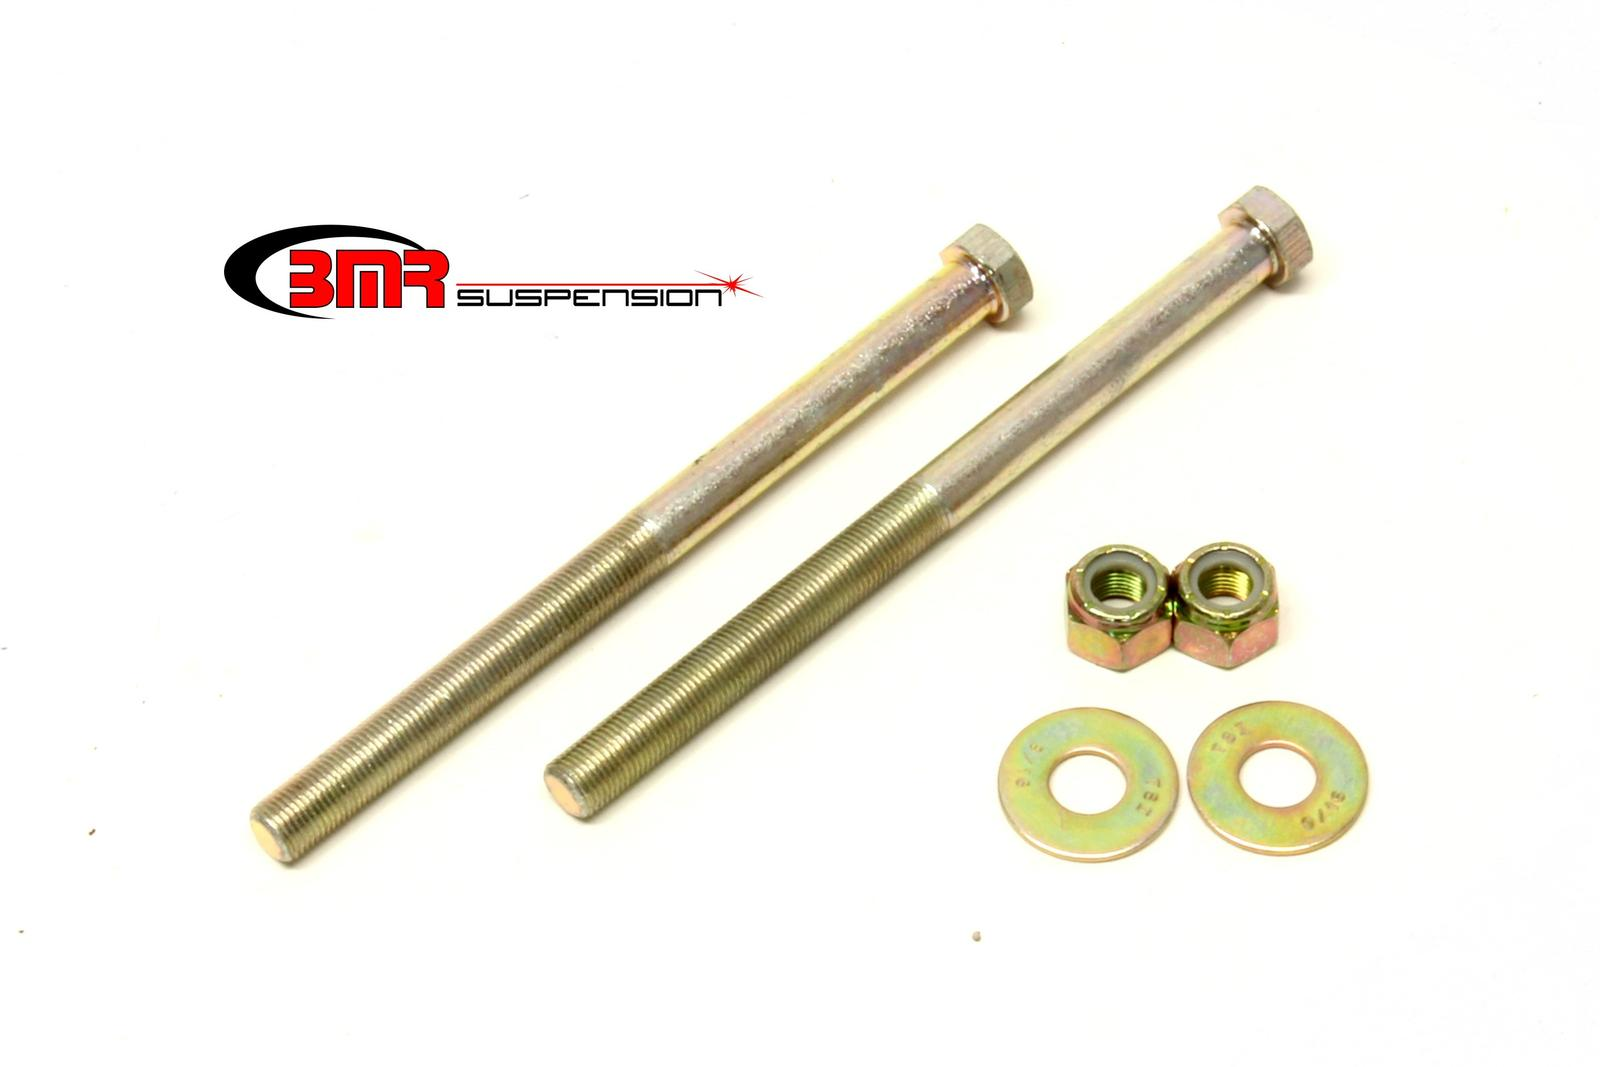 82-02 Fbody BMR Suspension Torque Arm Hardware Kit